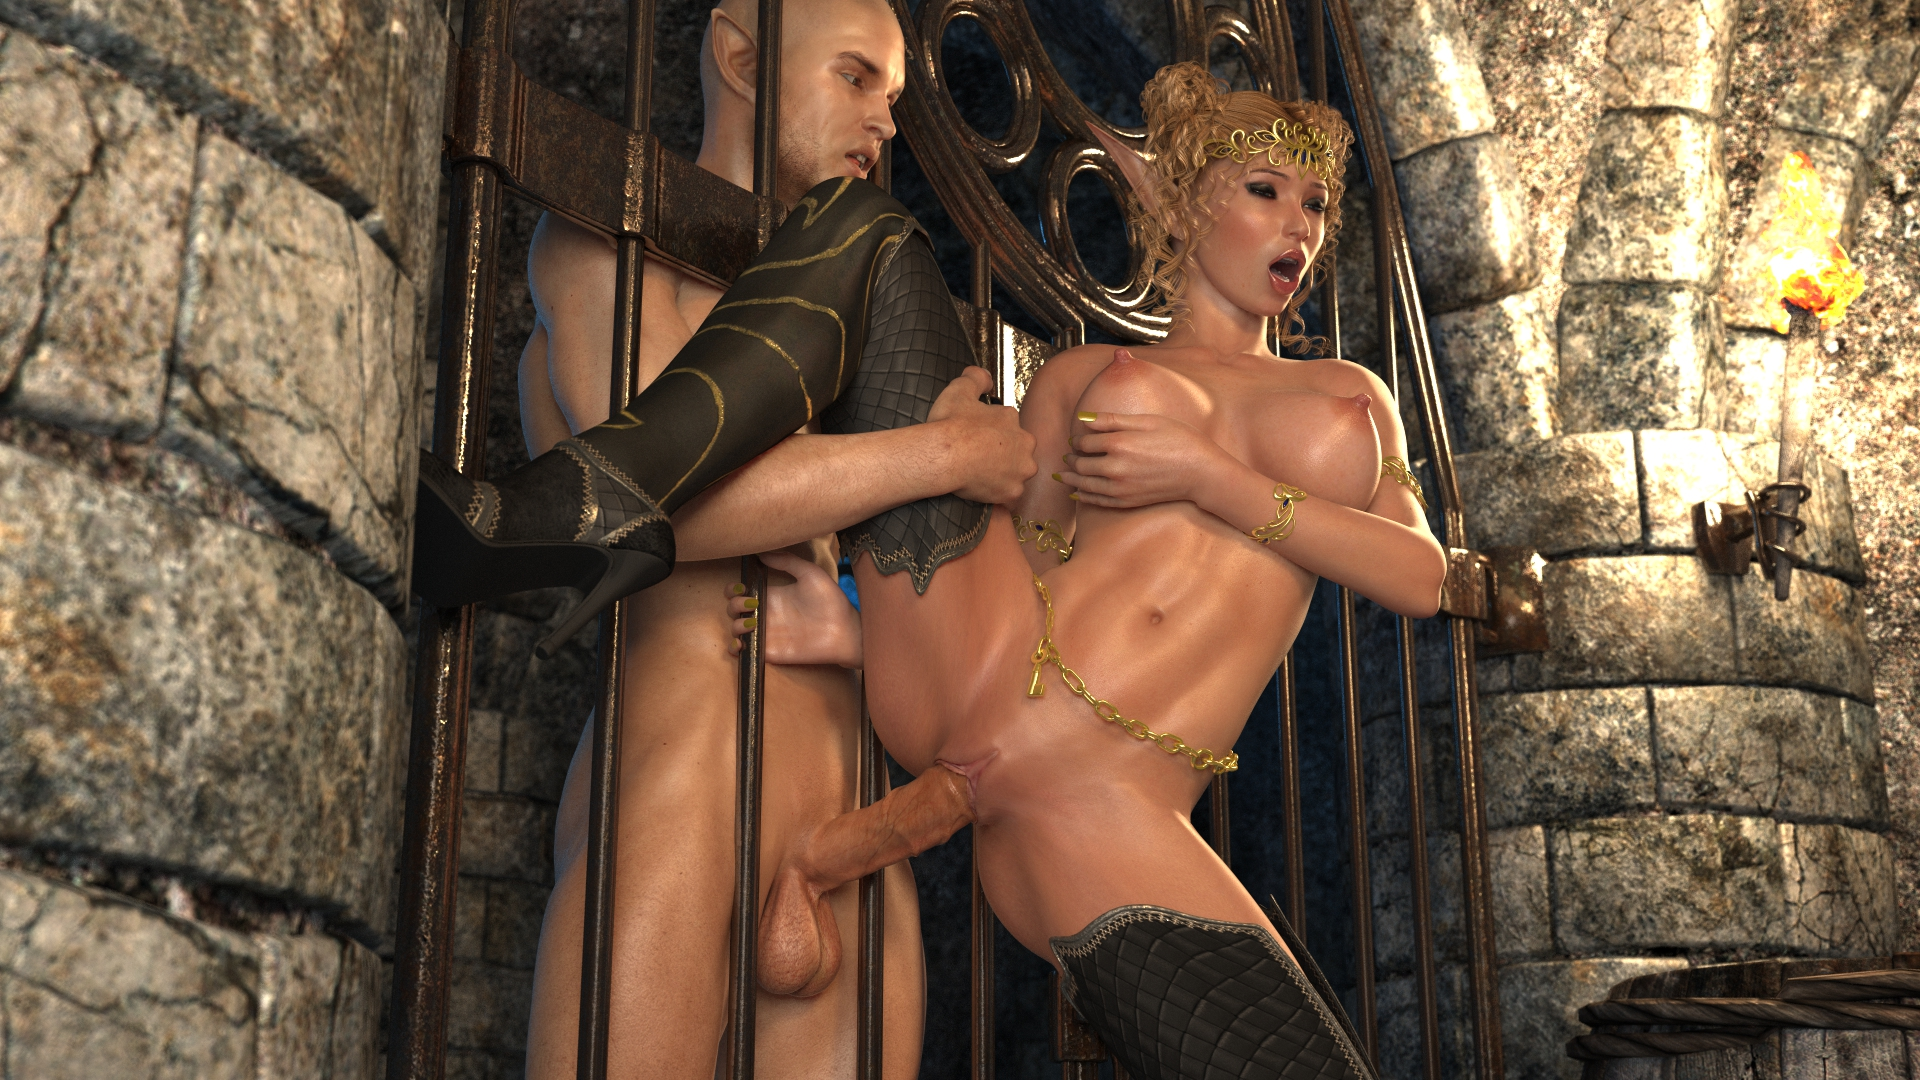 Blonde elf orcs video sexual picture